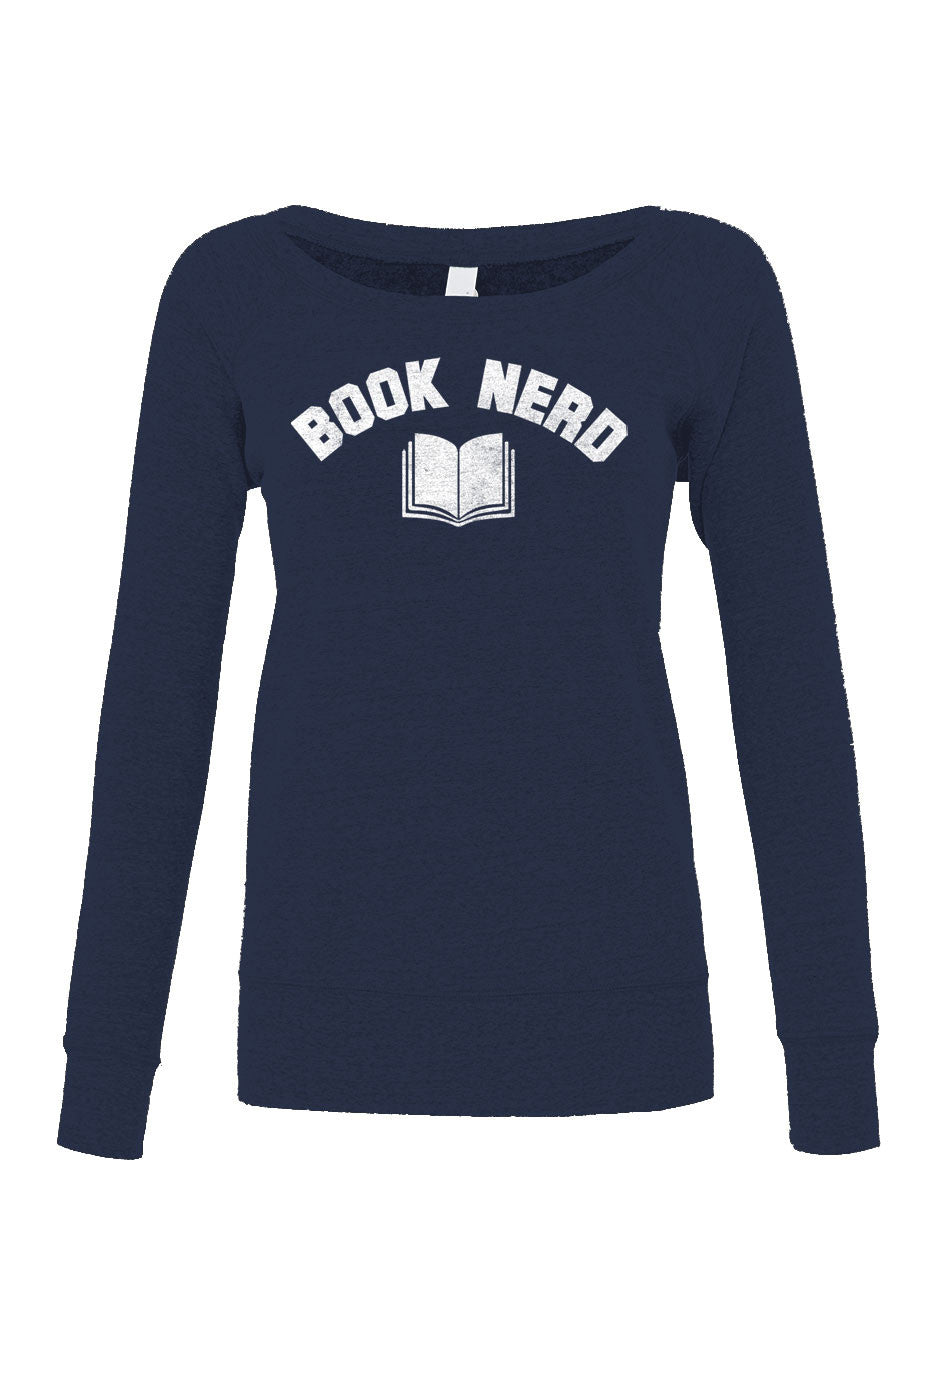 Women's Book Nerd Vintage Scoop Neck Fleece Geeky Nerdy Literary